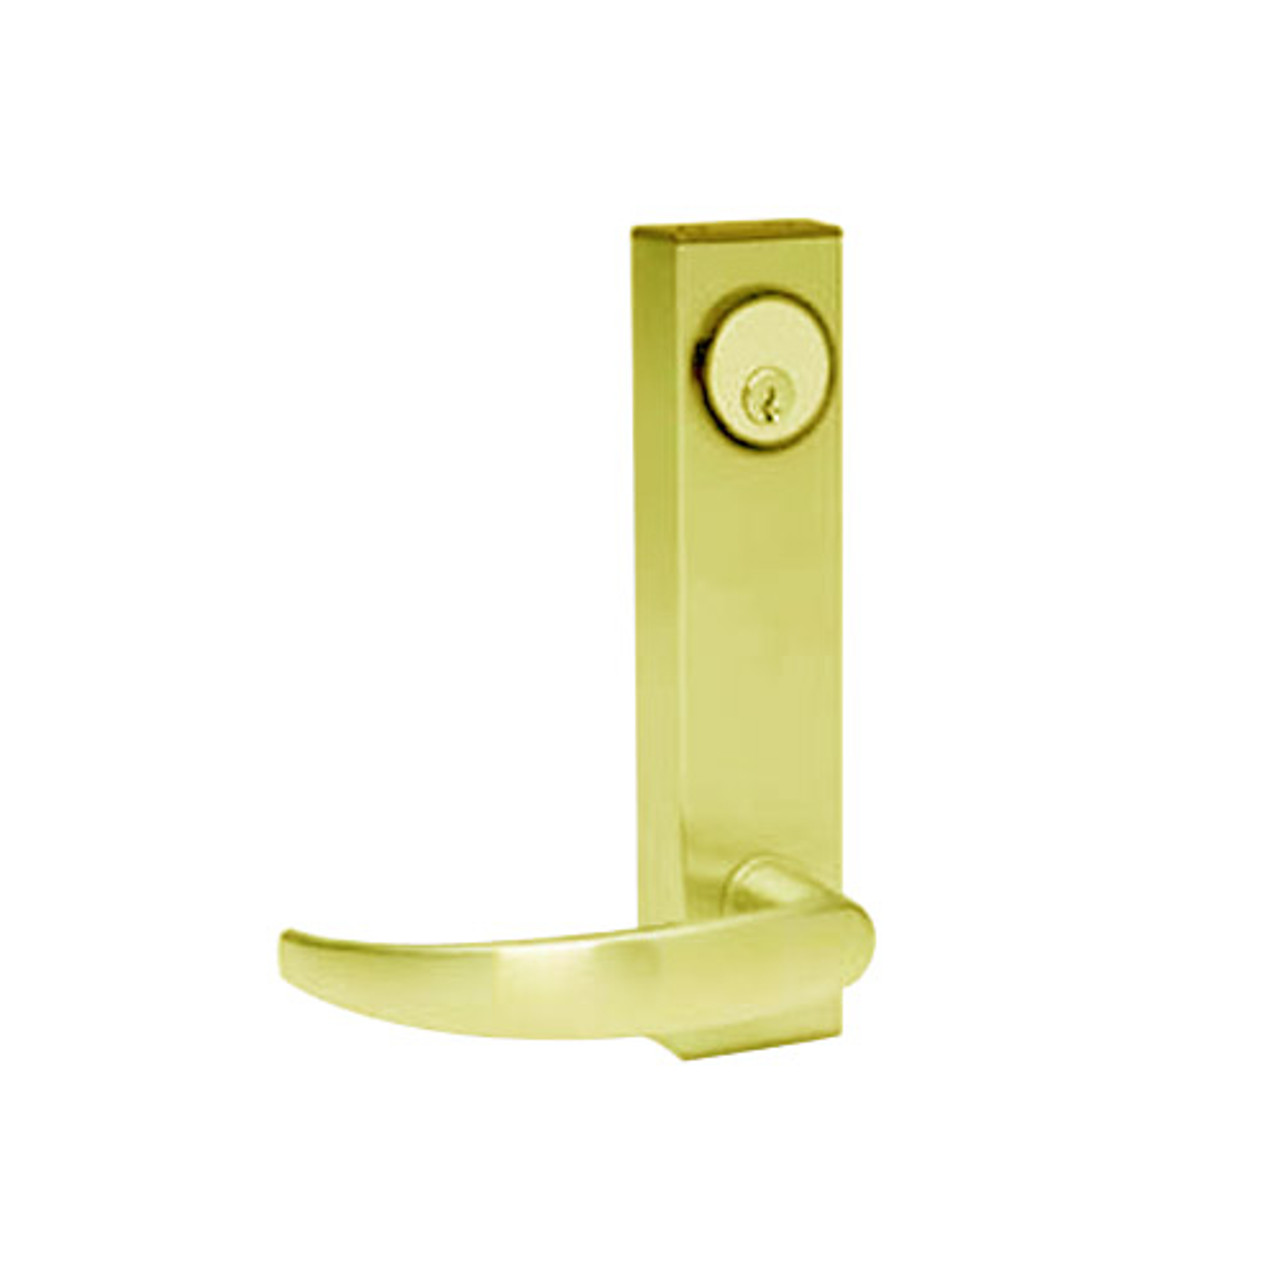 3080E-01-0-91-30 US3 Adams Rite Electrified Entry Trim with Curve Lever in Bright Brass Finish